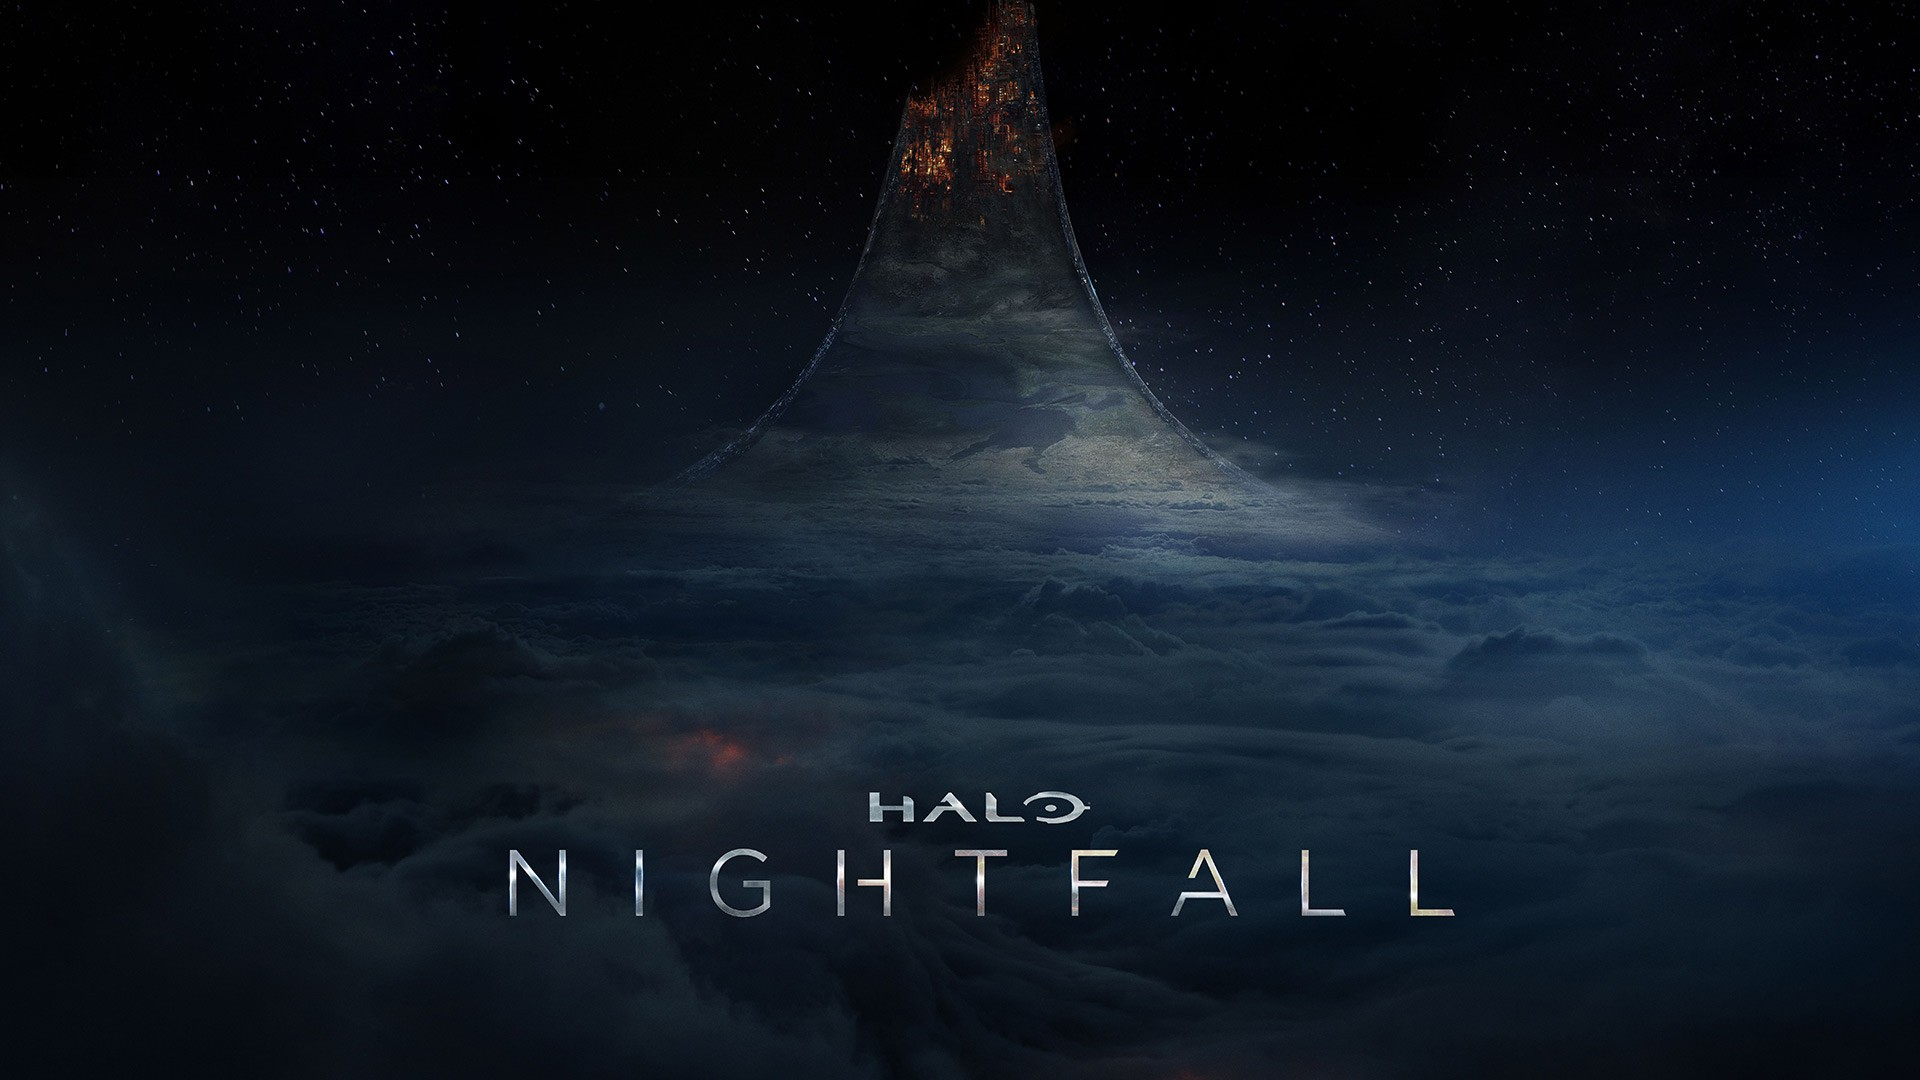 halo nightfall.jpg